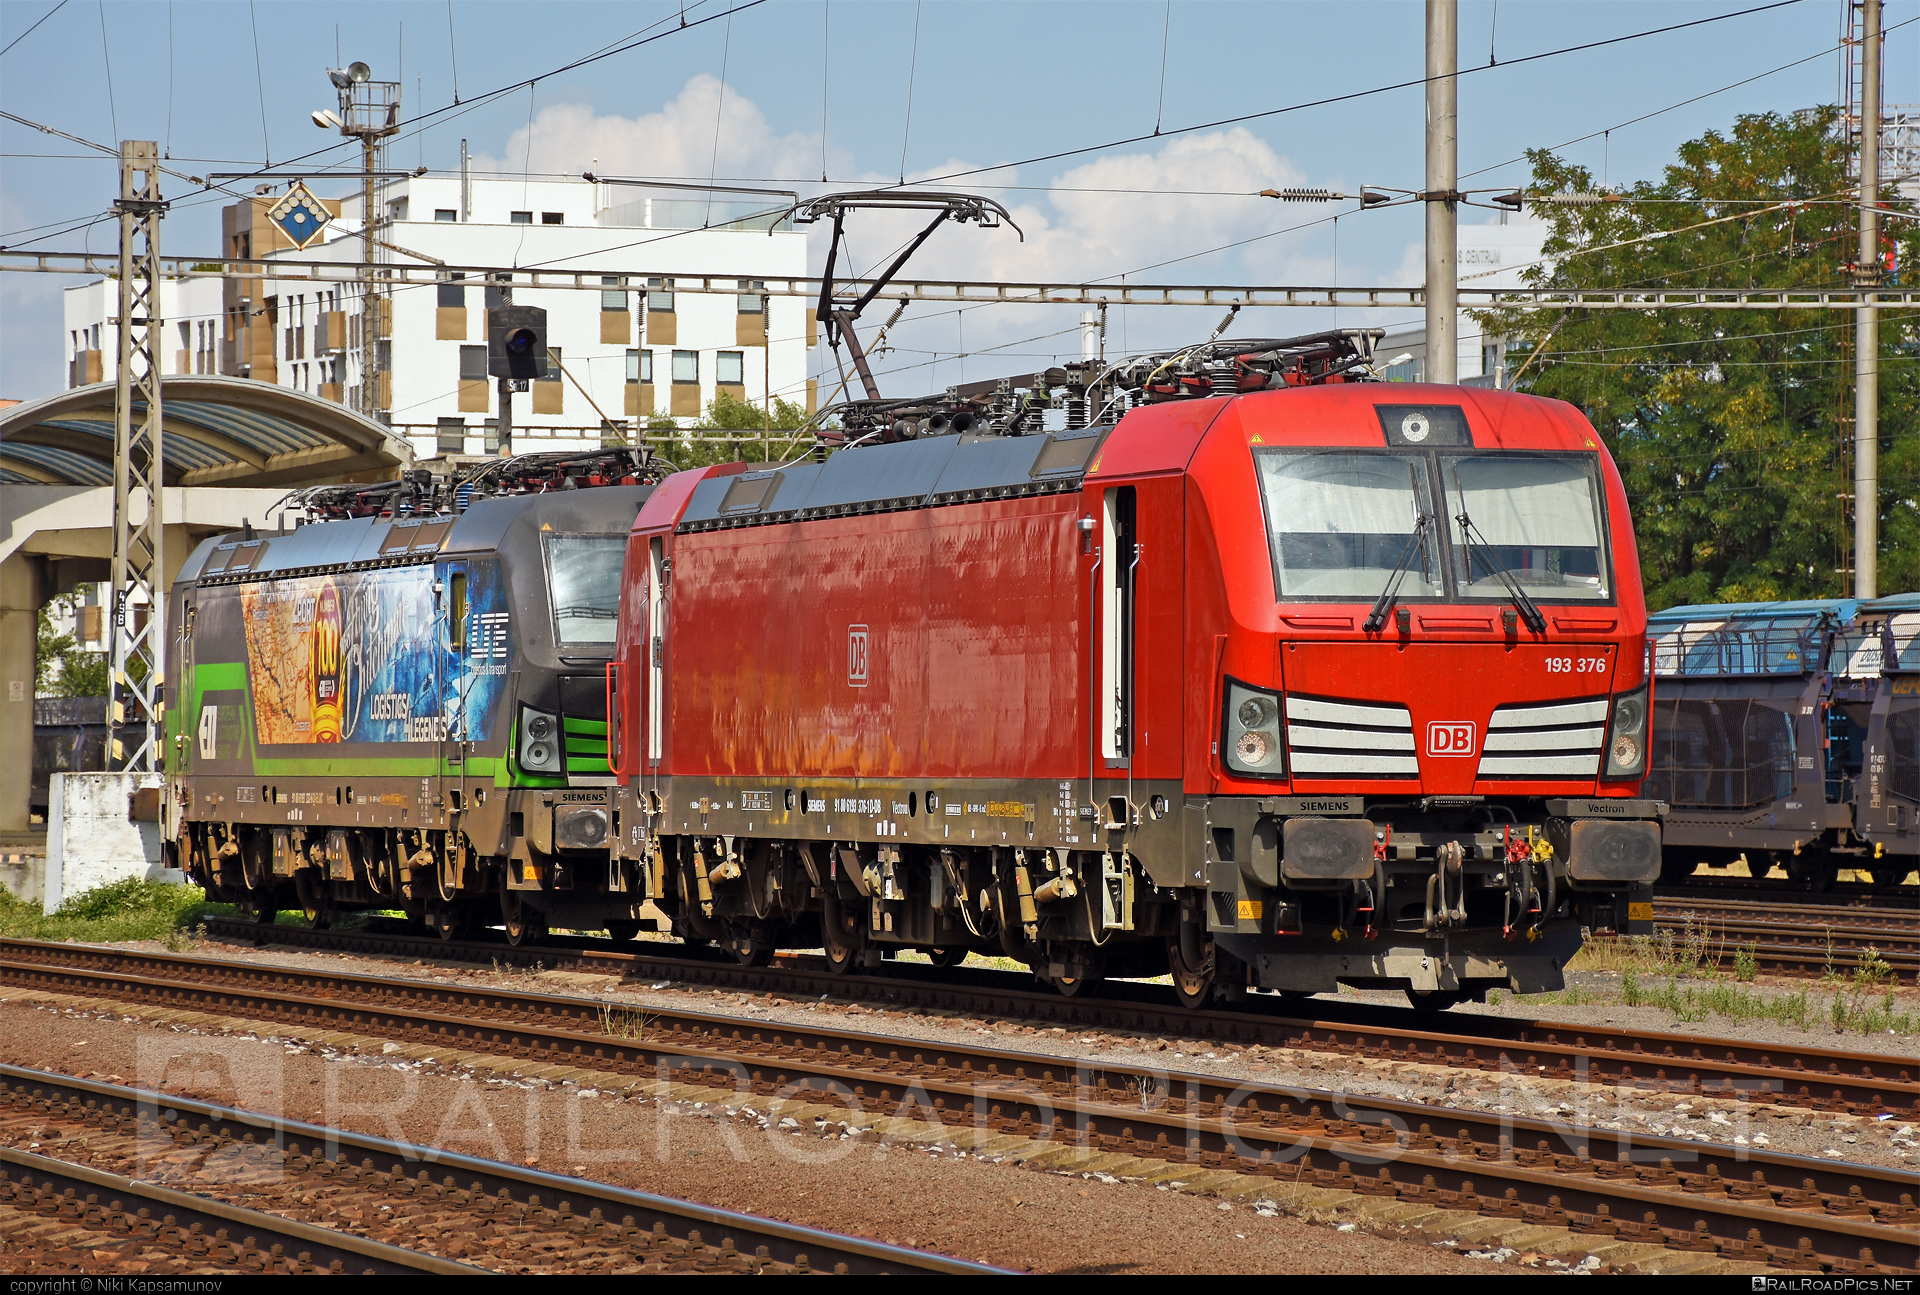 Siemens Vectron MS - 193 376 operated by DB Cargo AG #db #dbcargo #dbcargoag #deutschebahn #siemens #siemensvectron #siemensvectronms #vectron #vectronms